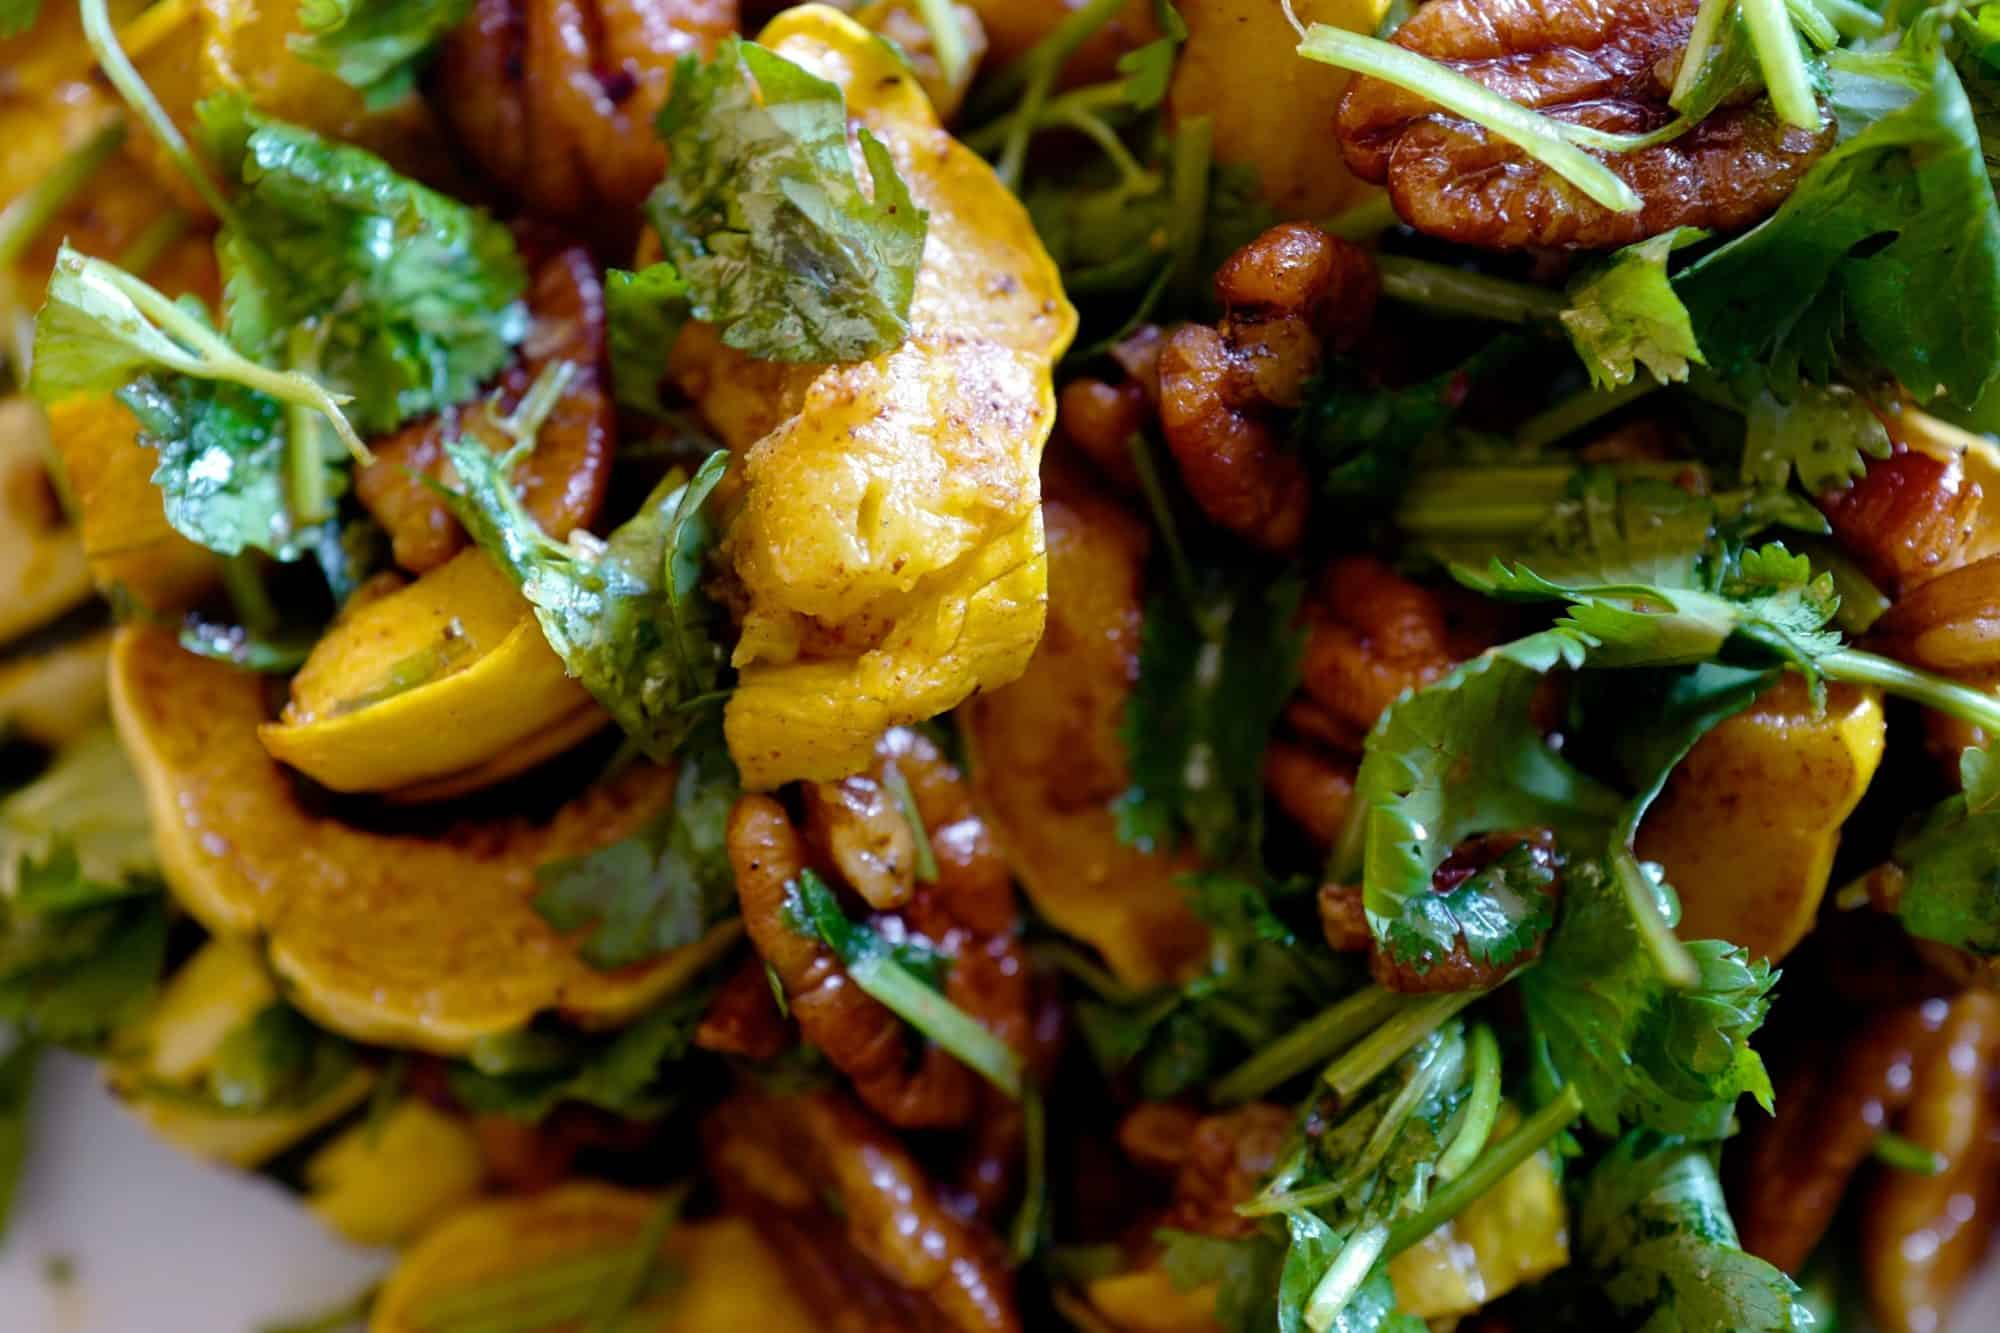 Delicata squash salad with herbs and spicy pecans close up by foodjoya